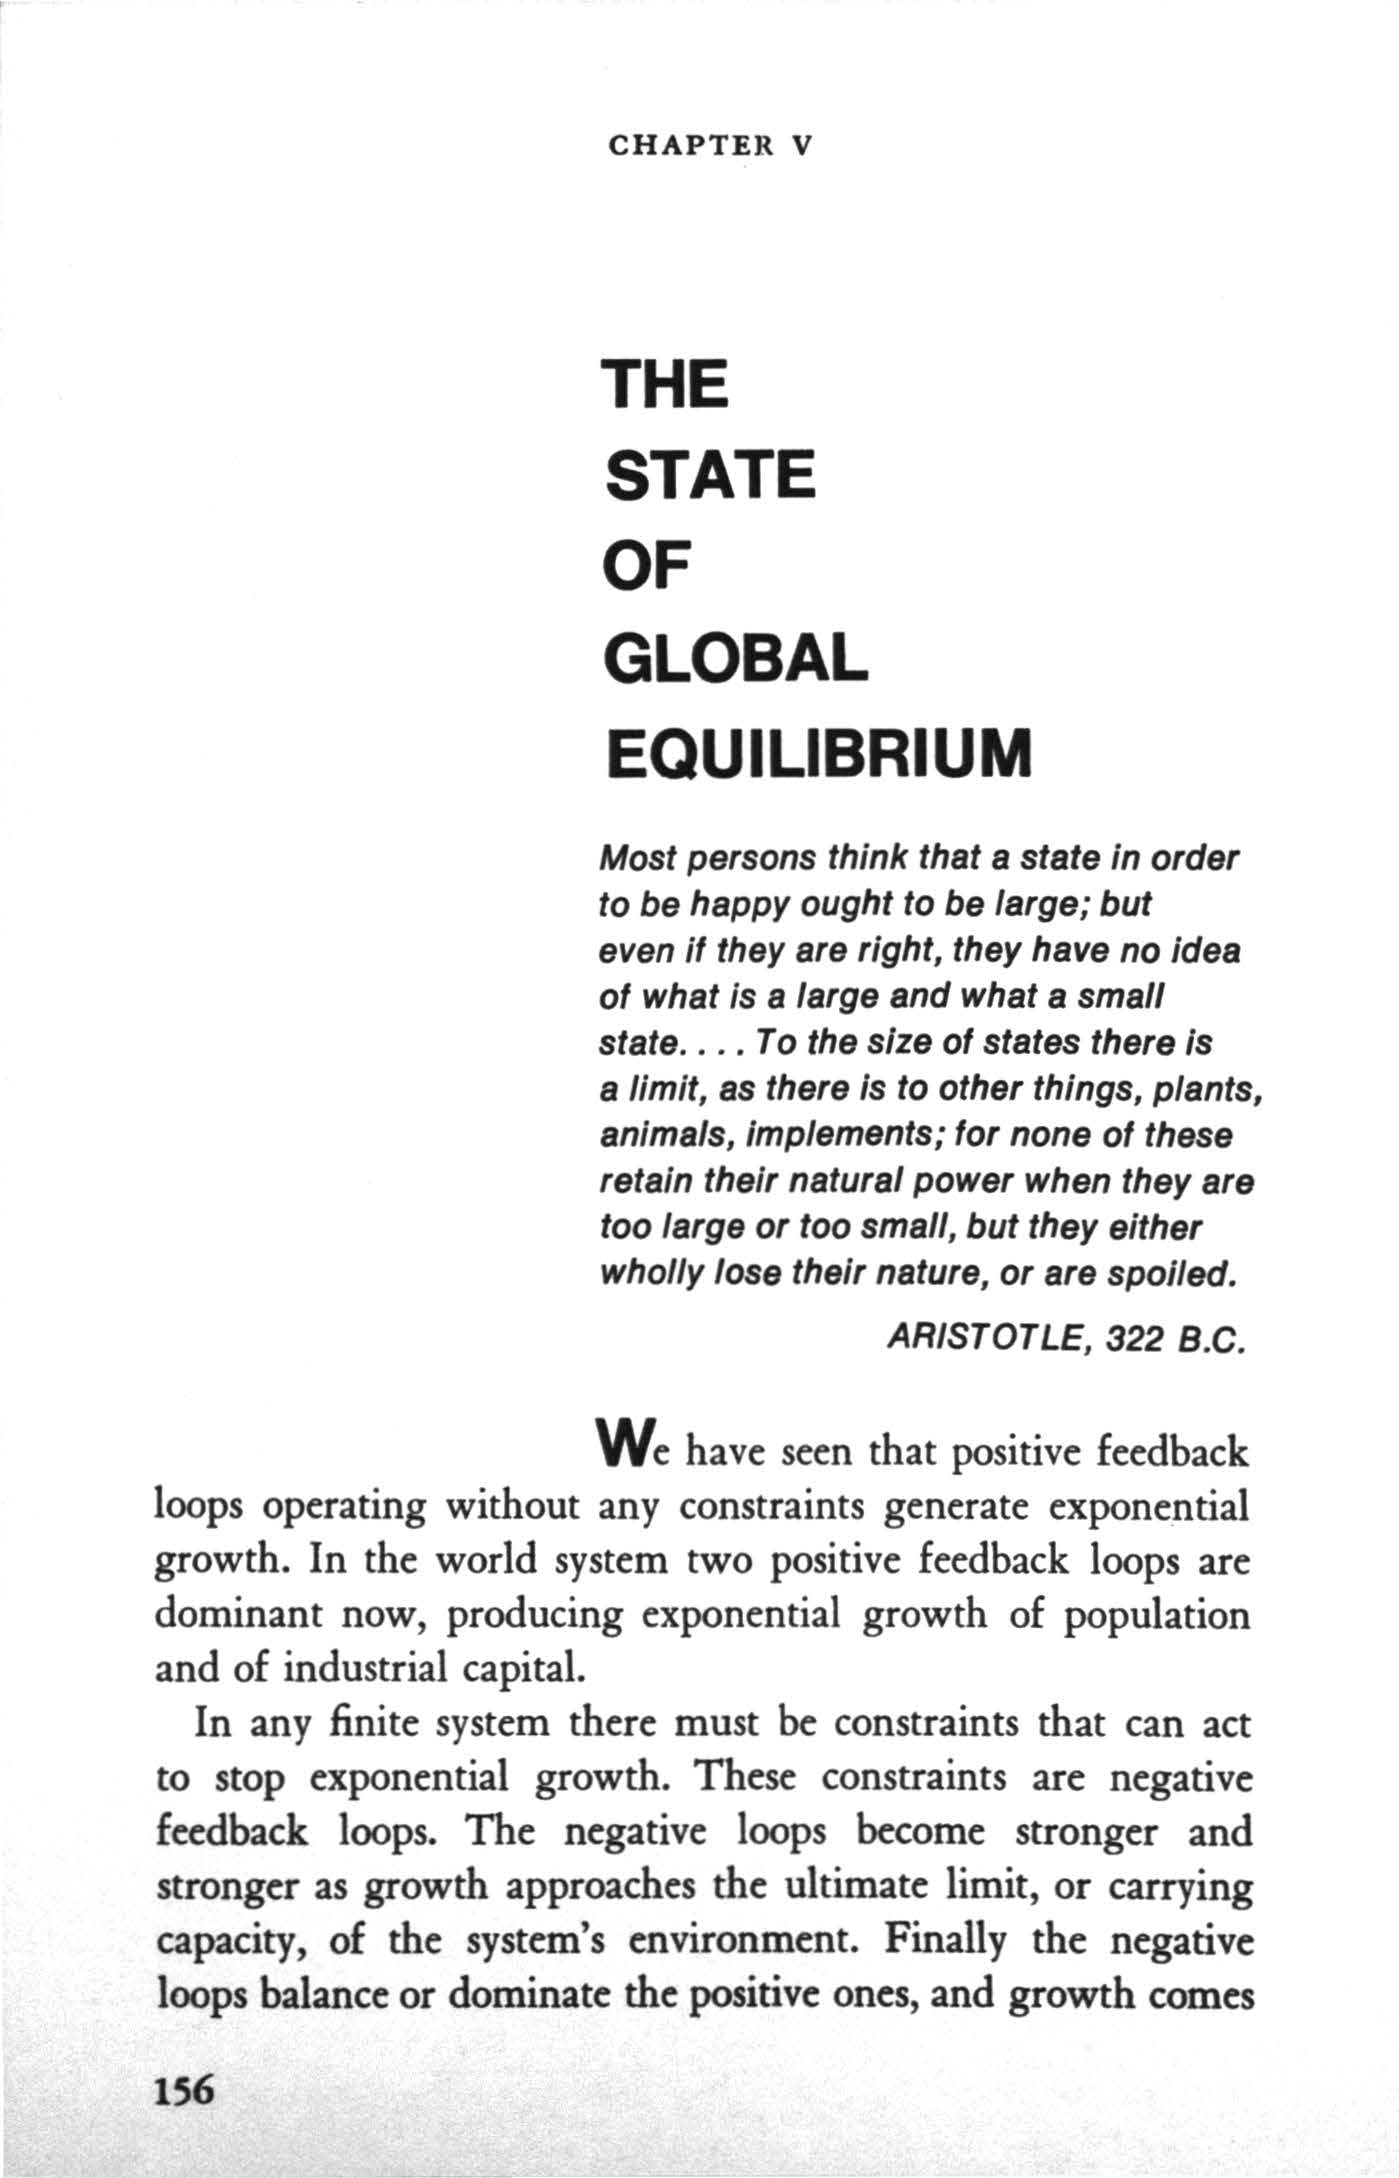 CHAPTER V THE STATE OF GLOBAL EQULBRUM Most persons think that a state in order to be happy ought to be large; but even if they are right, they have no idea of what is a large and what a small state.